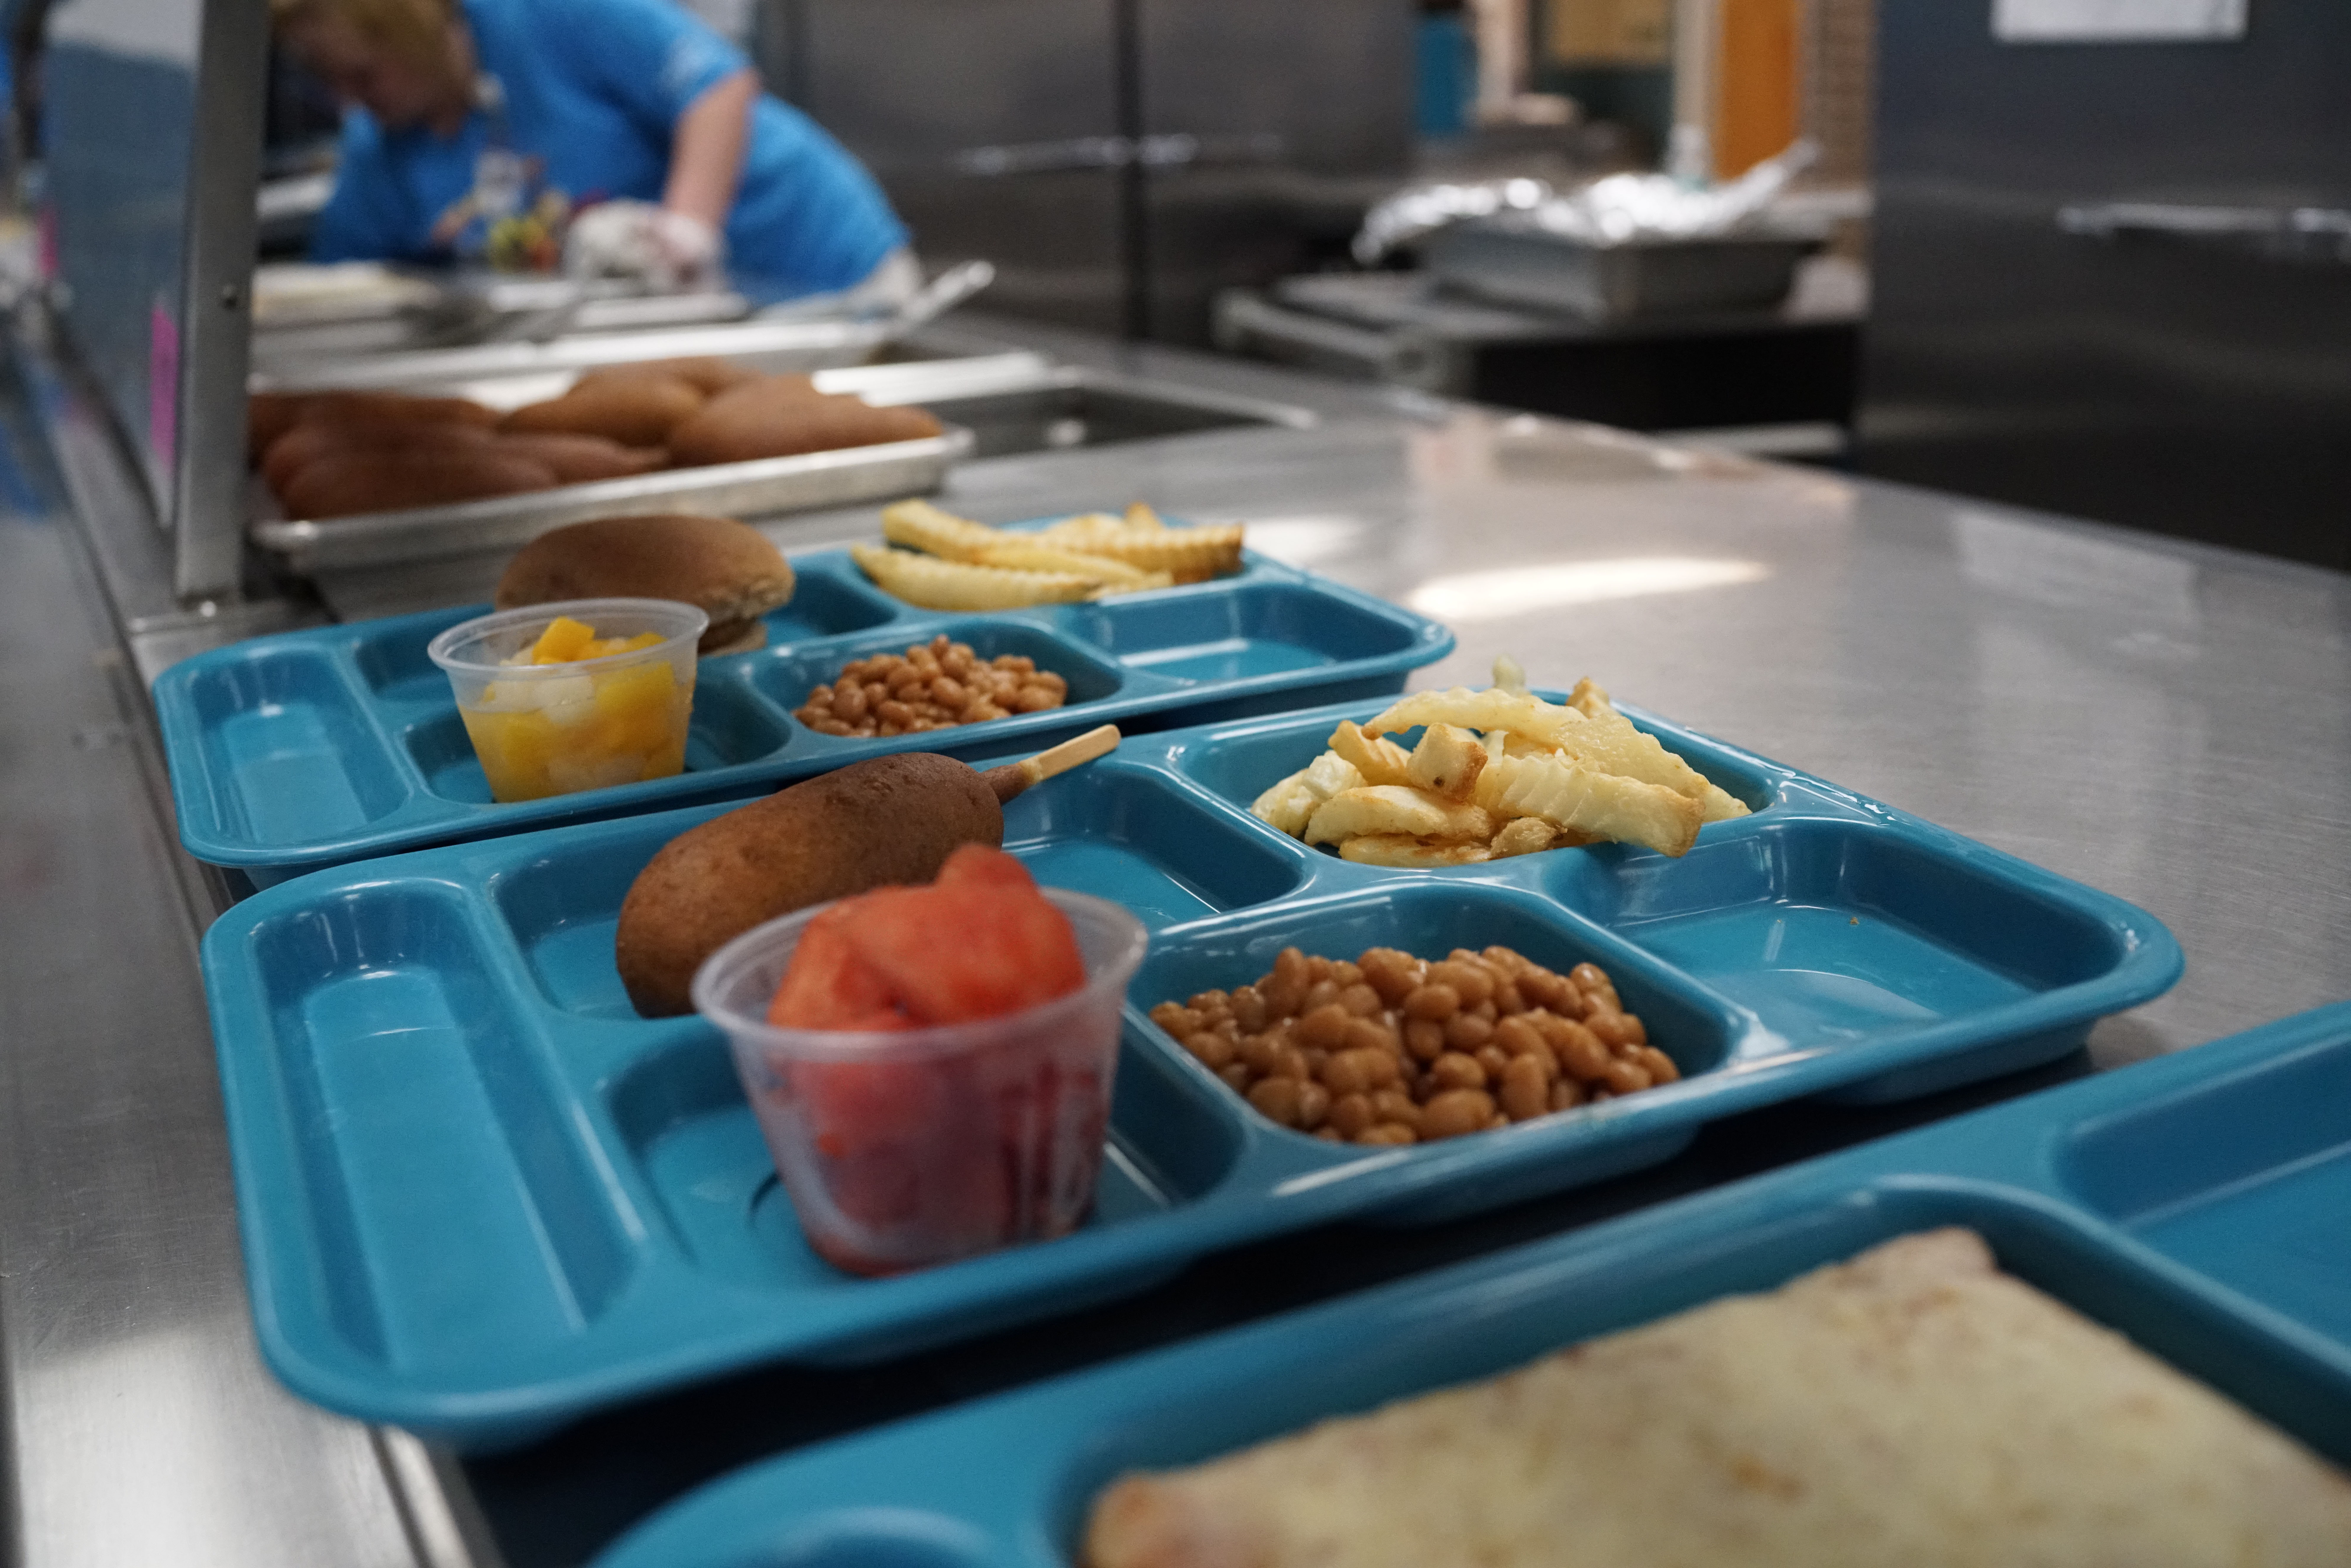 Trump's school lunch menu gets thumbs up from local